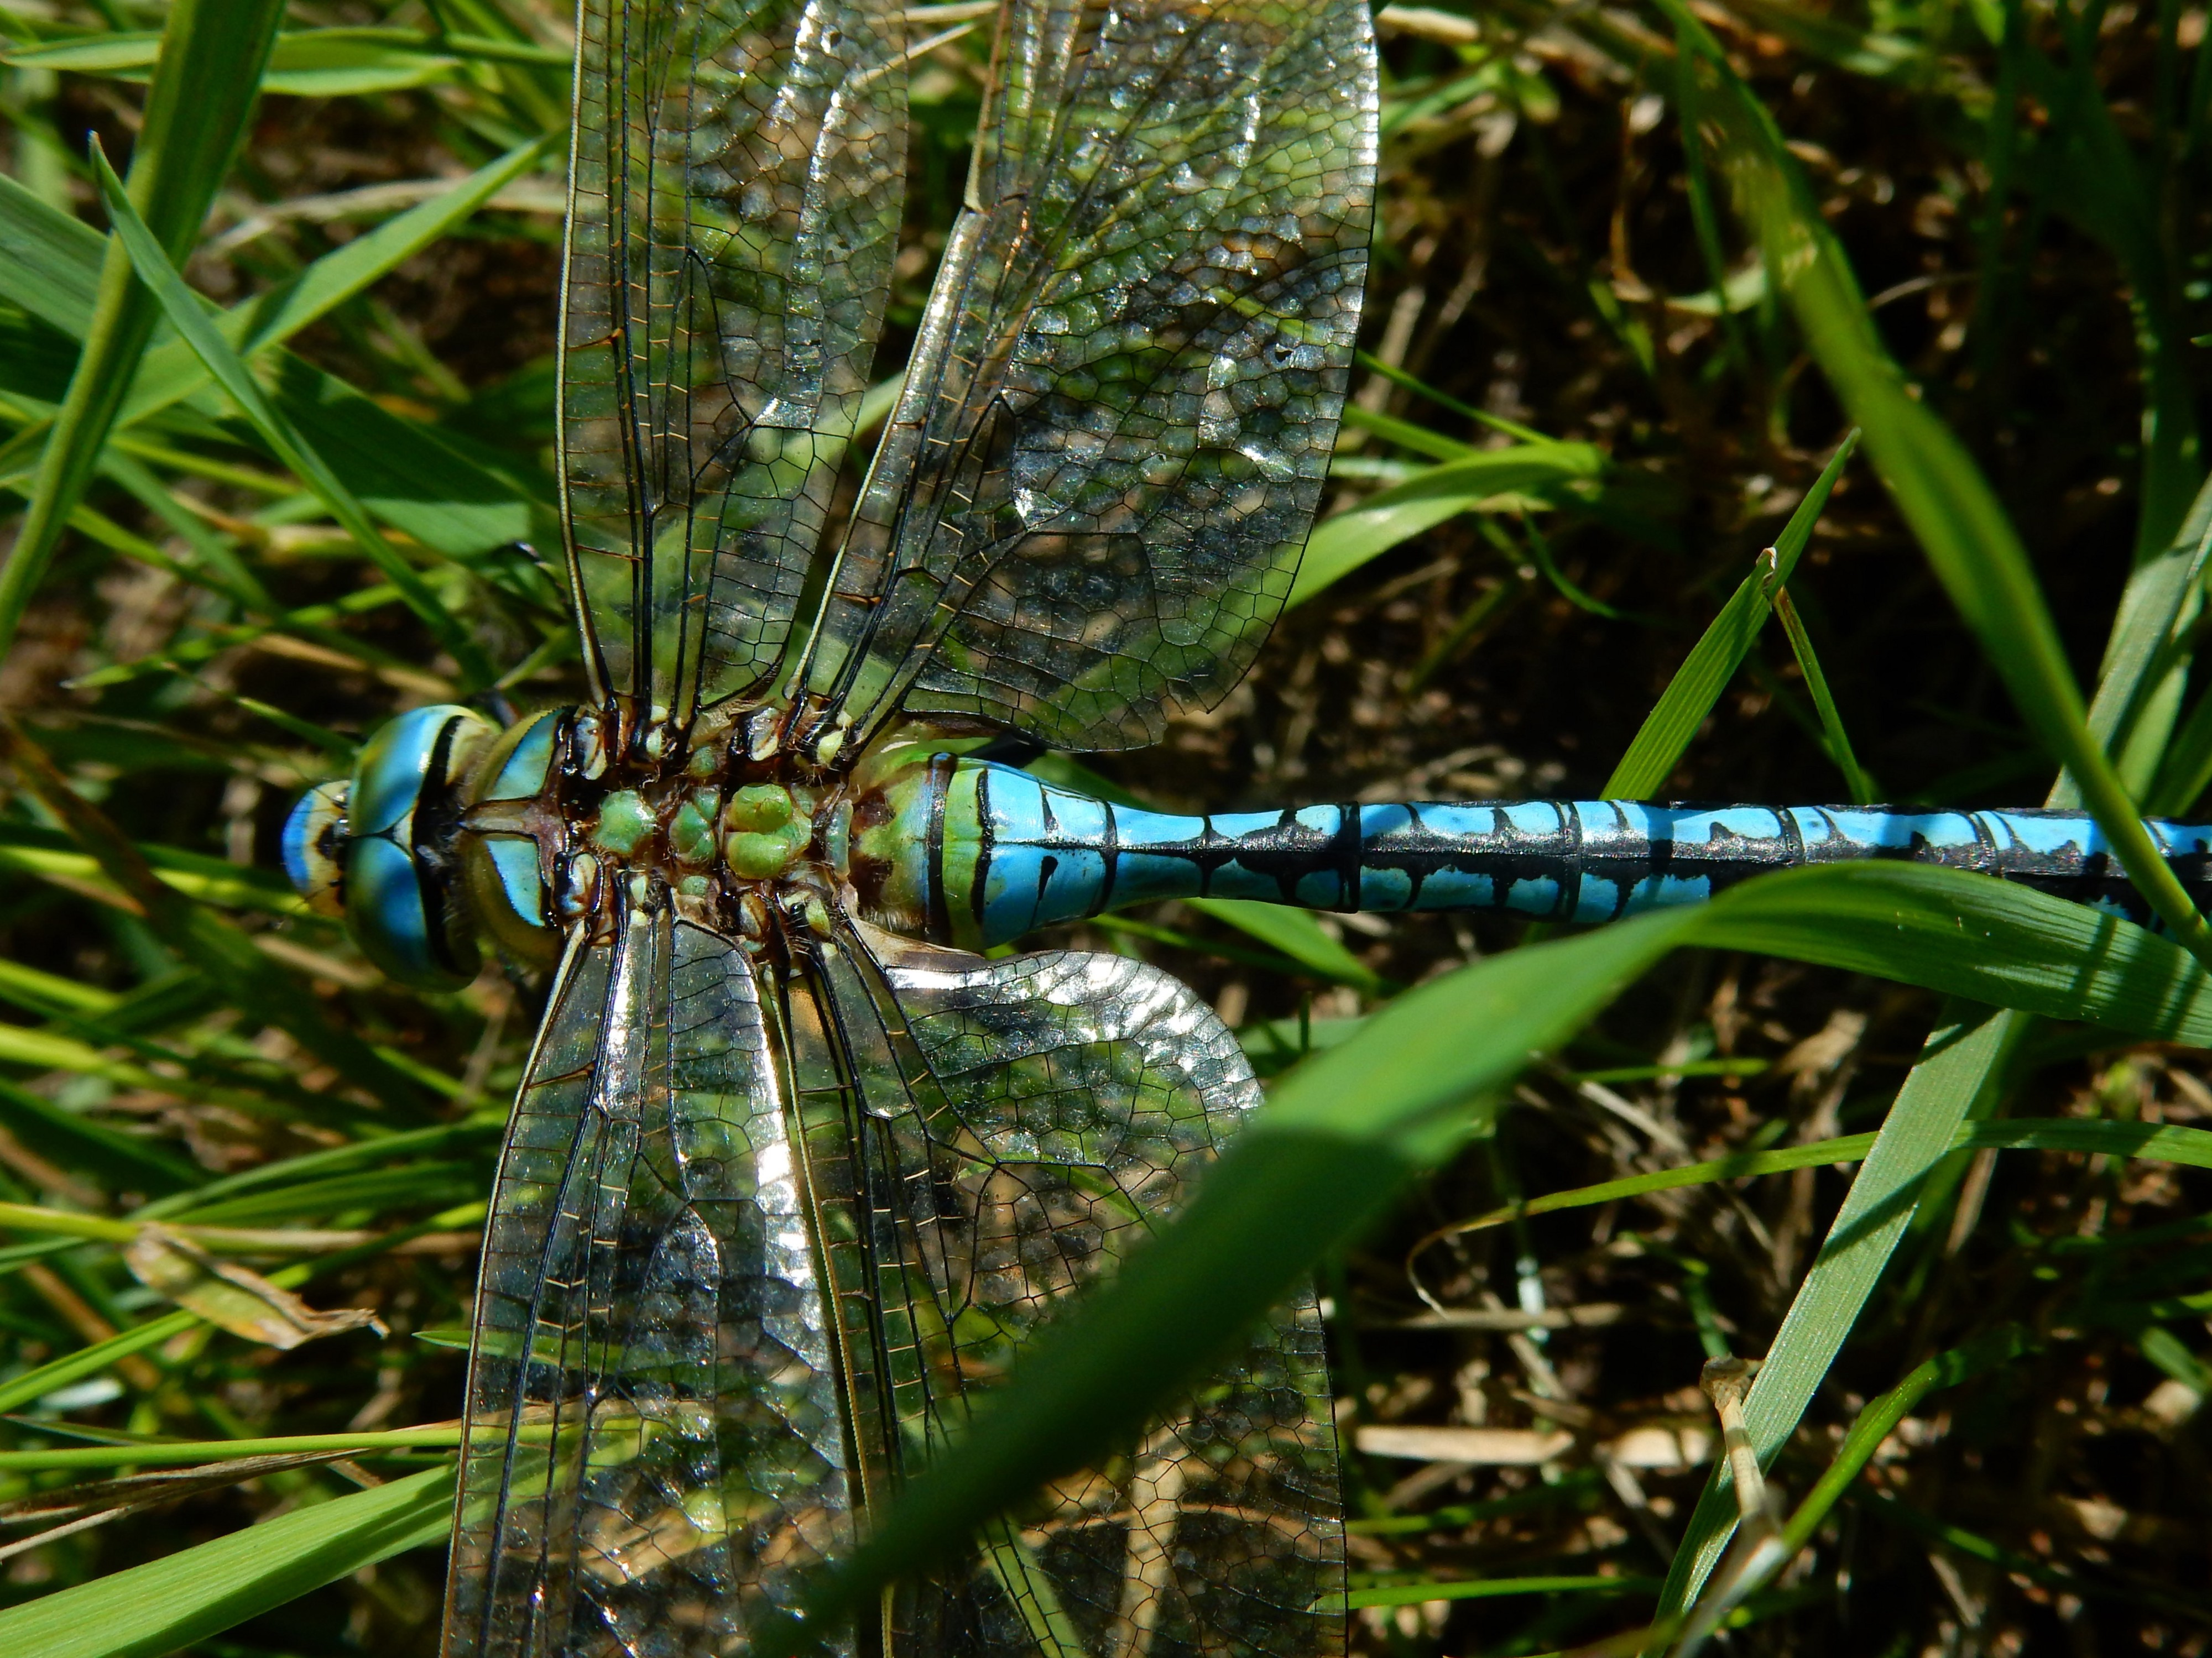 The male emperor dragonfly has a bright turquoise body with green back.